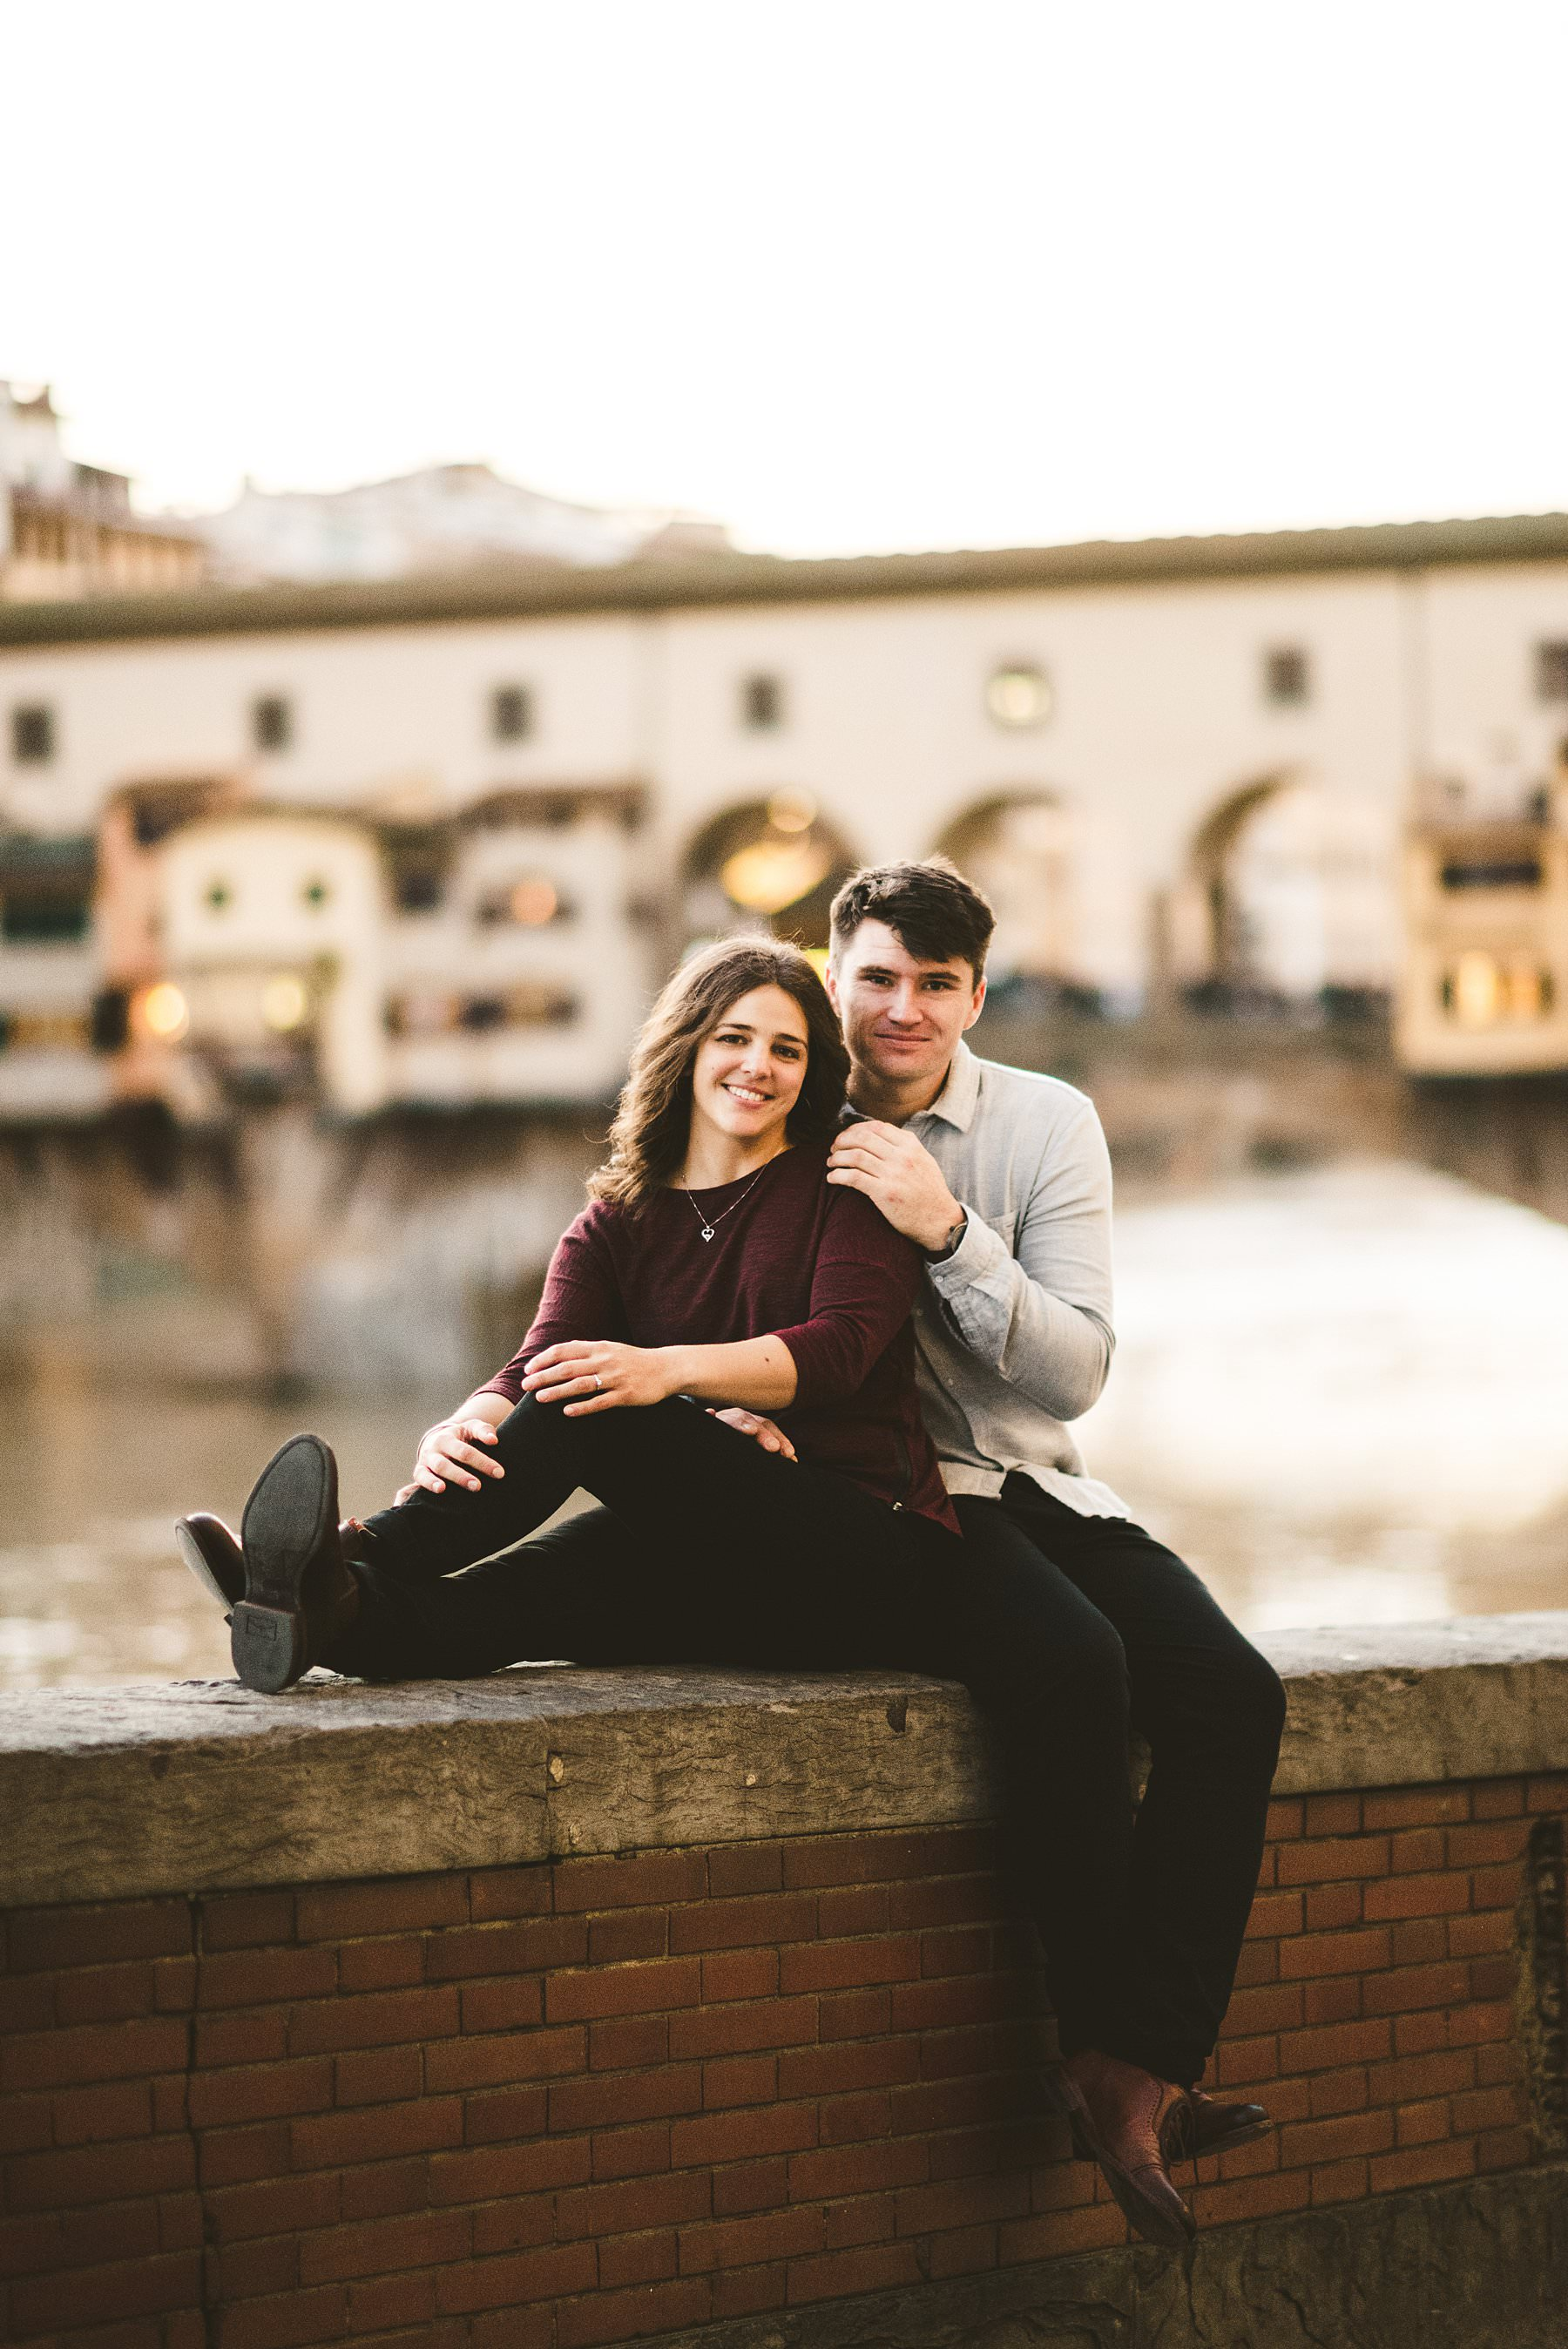 Traditional engagement couple portrait in one of the most beautiful location of Florence near Ponte Vecchio in the heart of the city